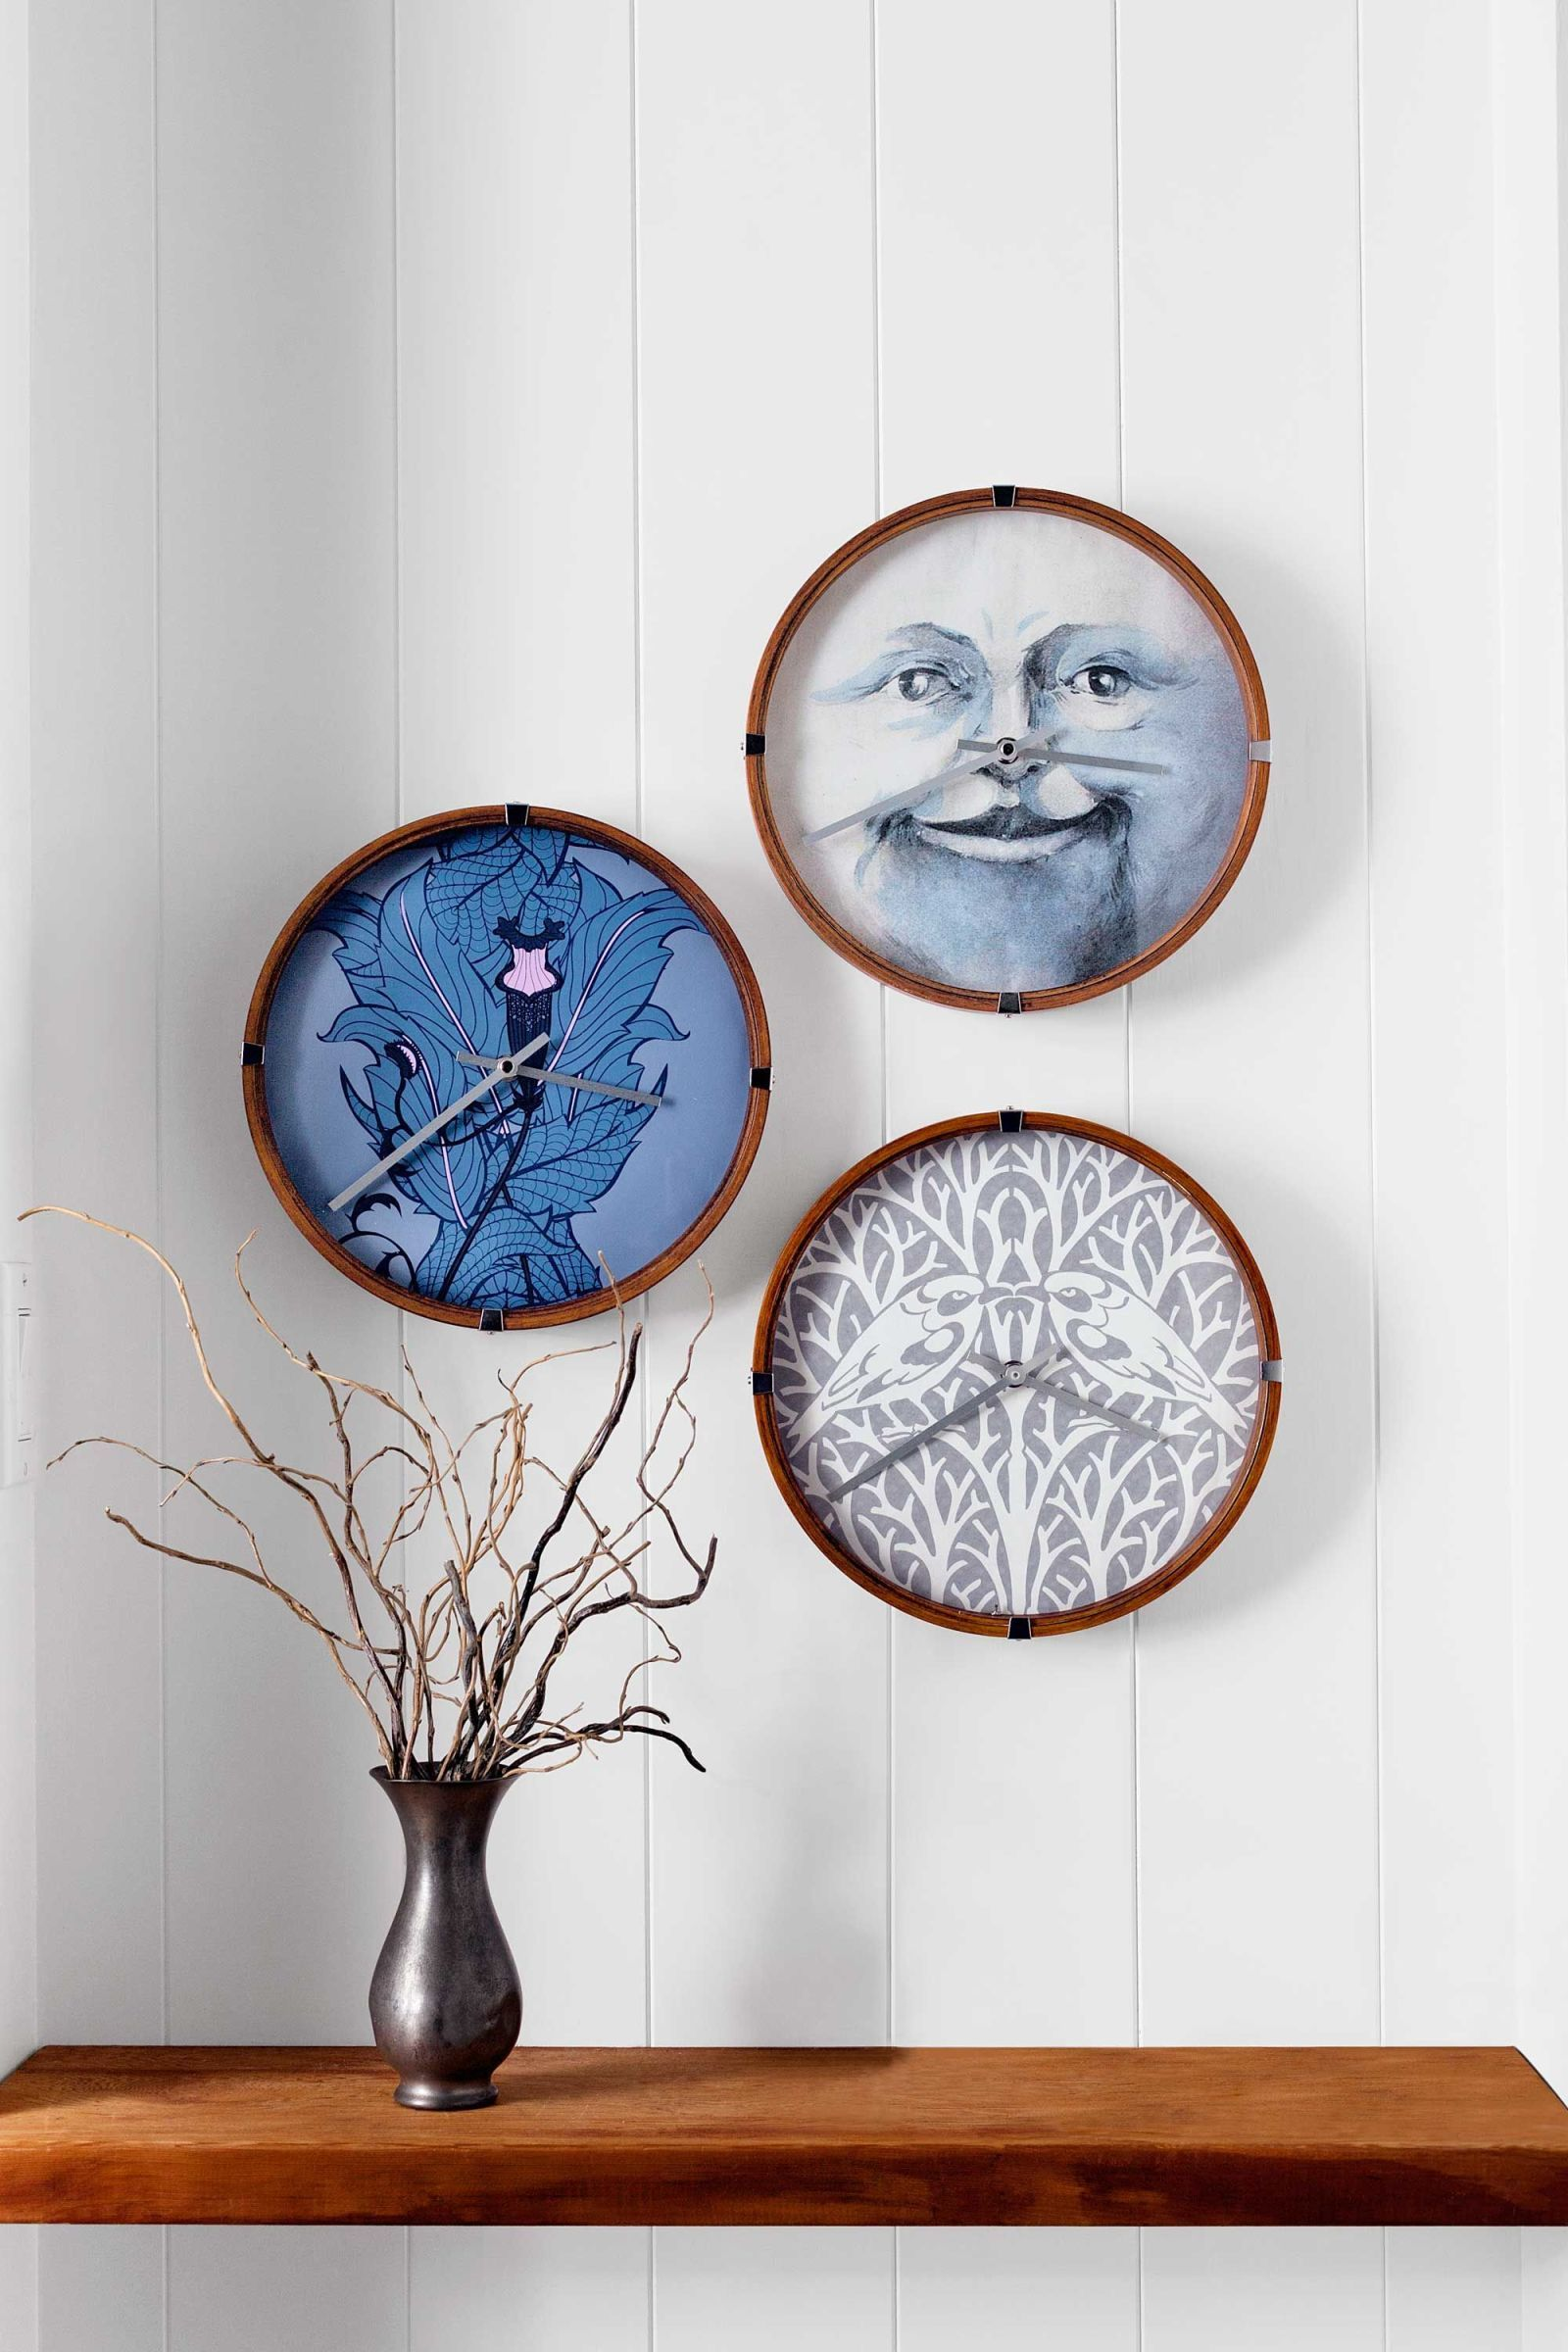 45+ Crafty Ideas for Home Decor You Can Make Yourself | DIY > Home ...